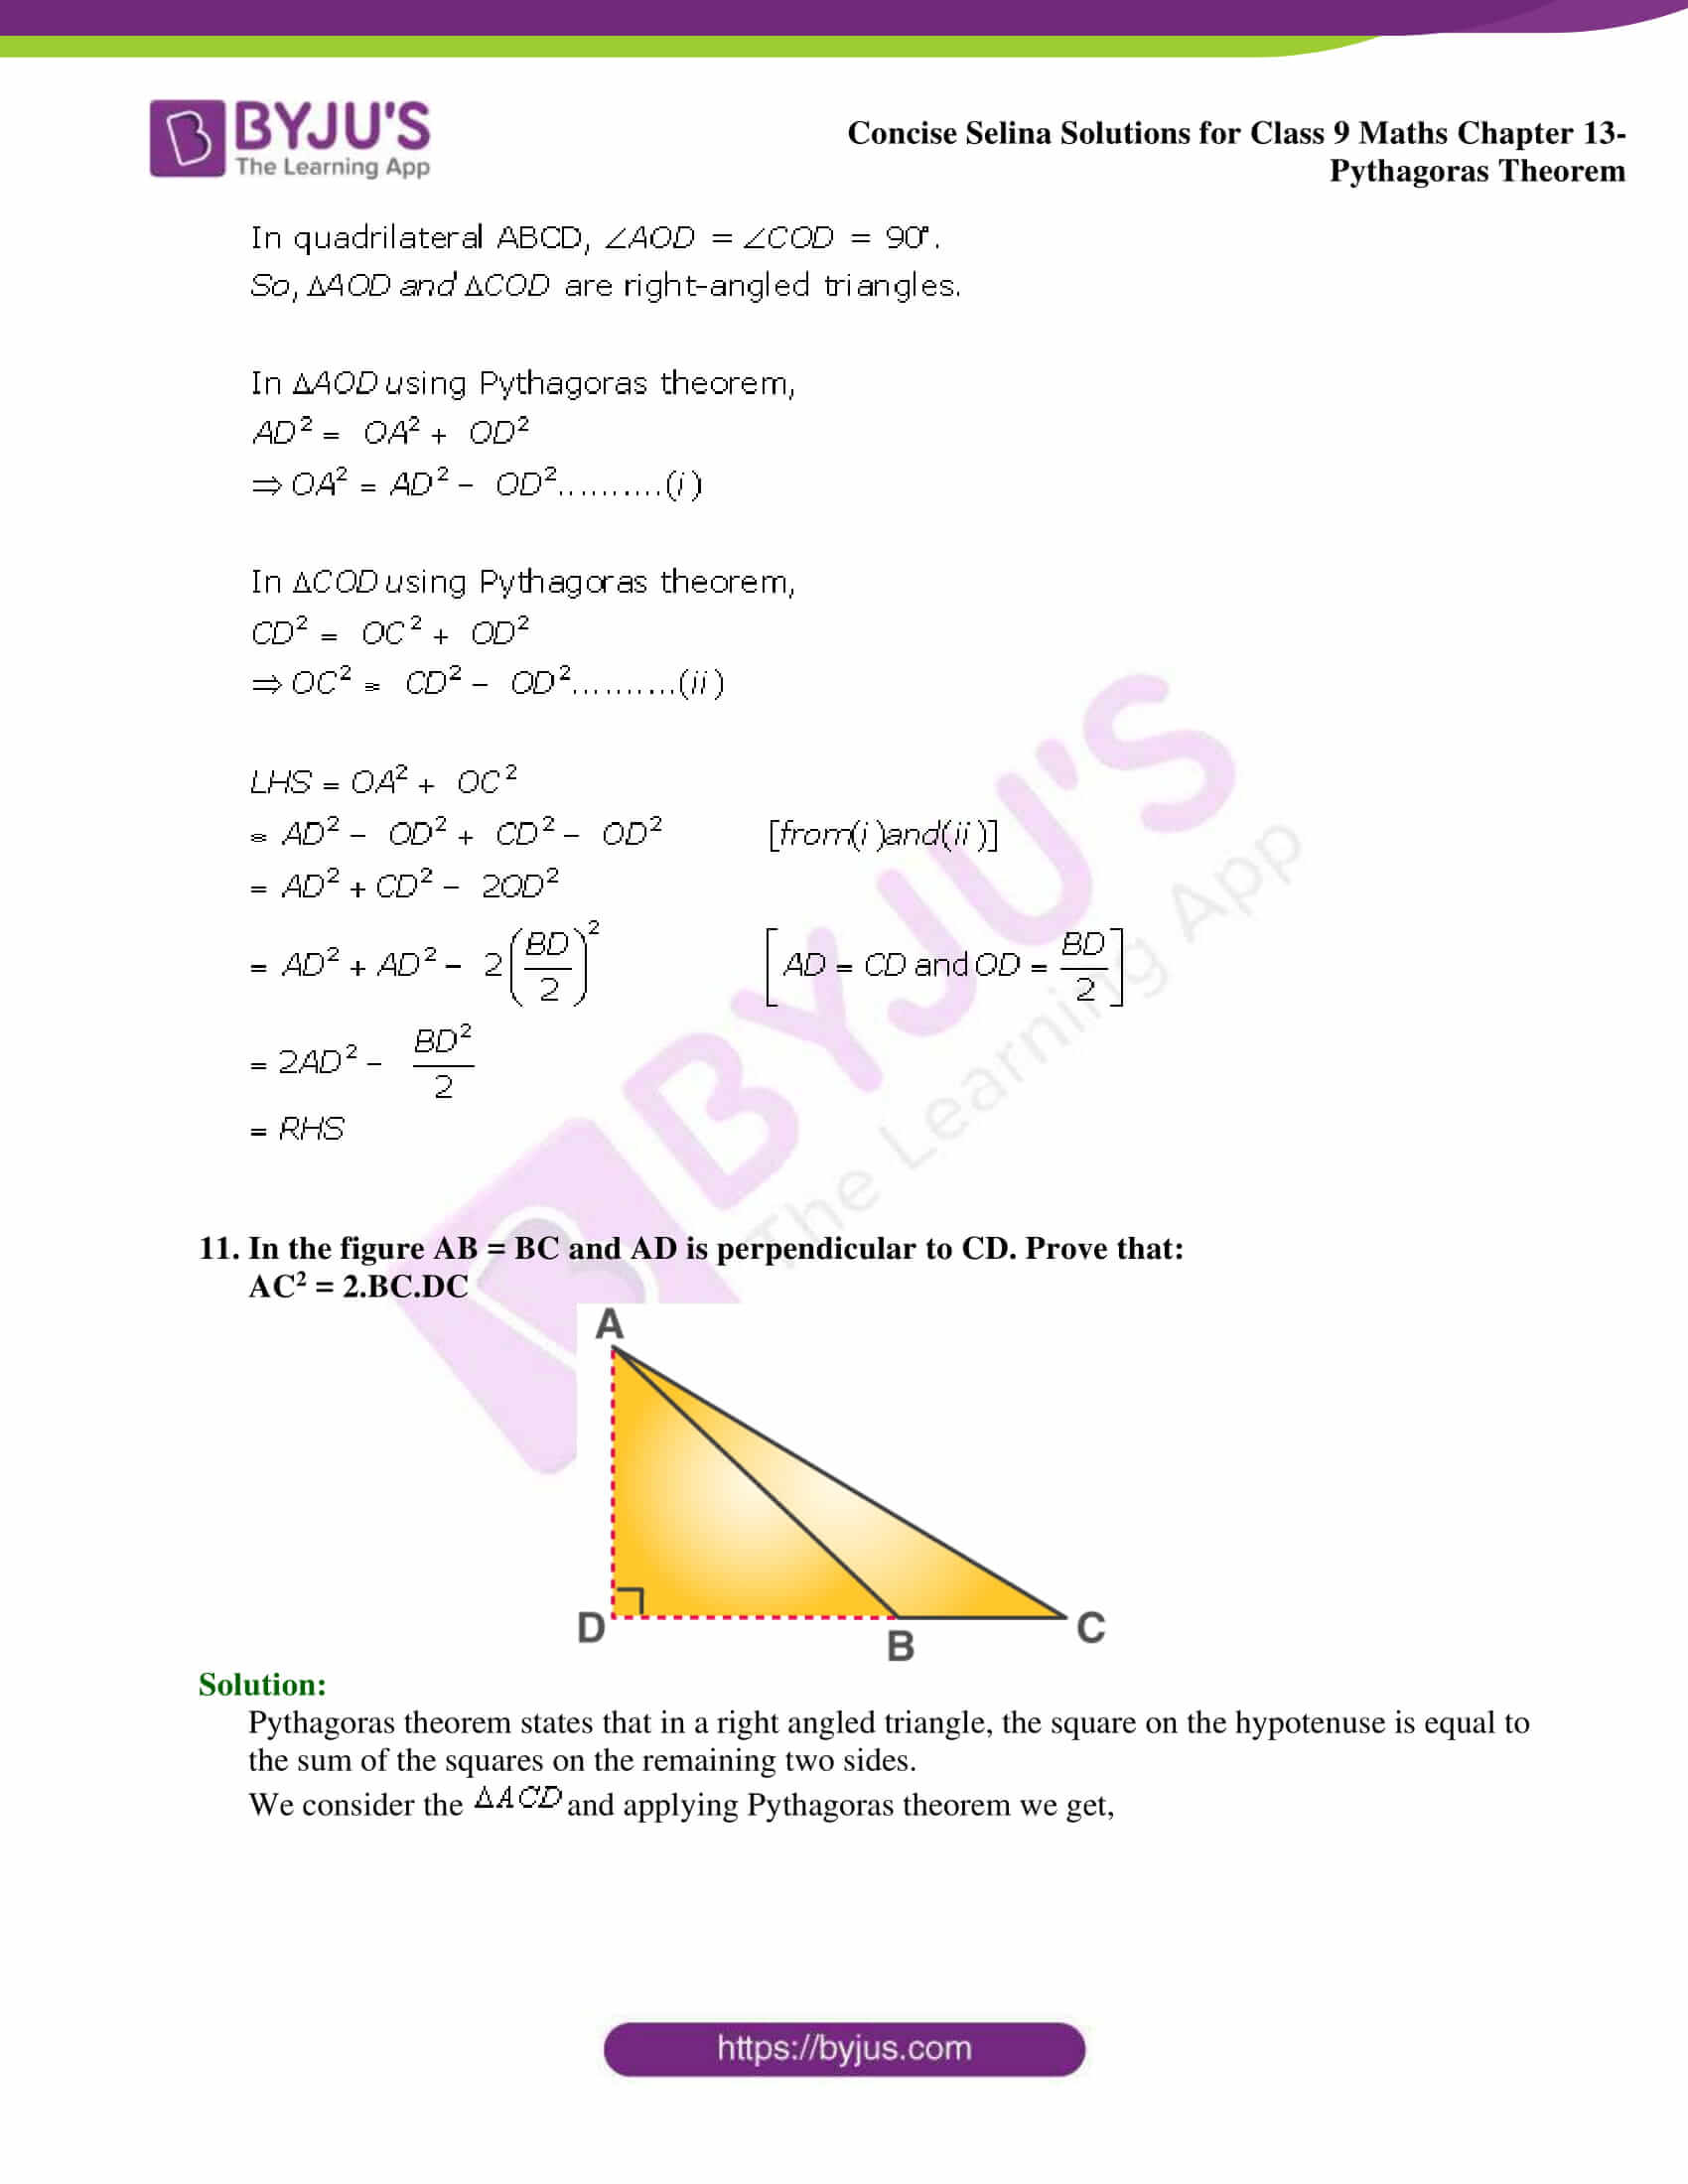 selina Solutions for Class 9 Maths Chapter 13 part 19